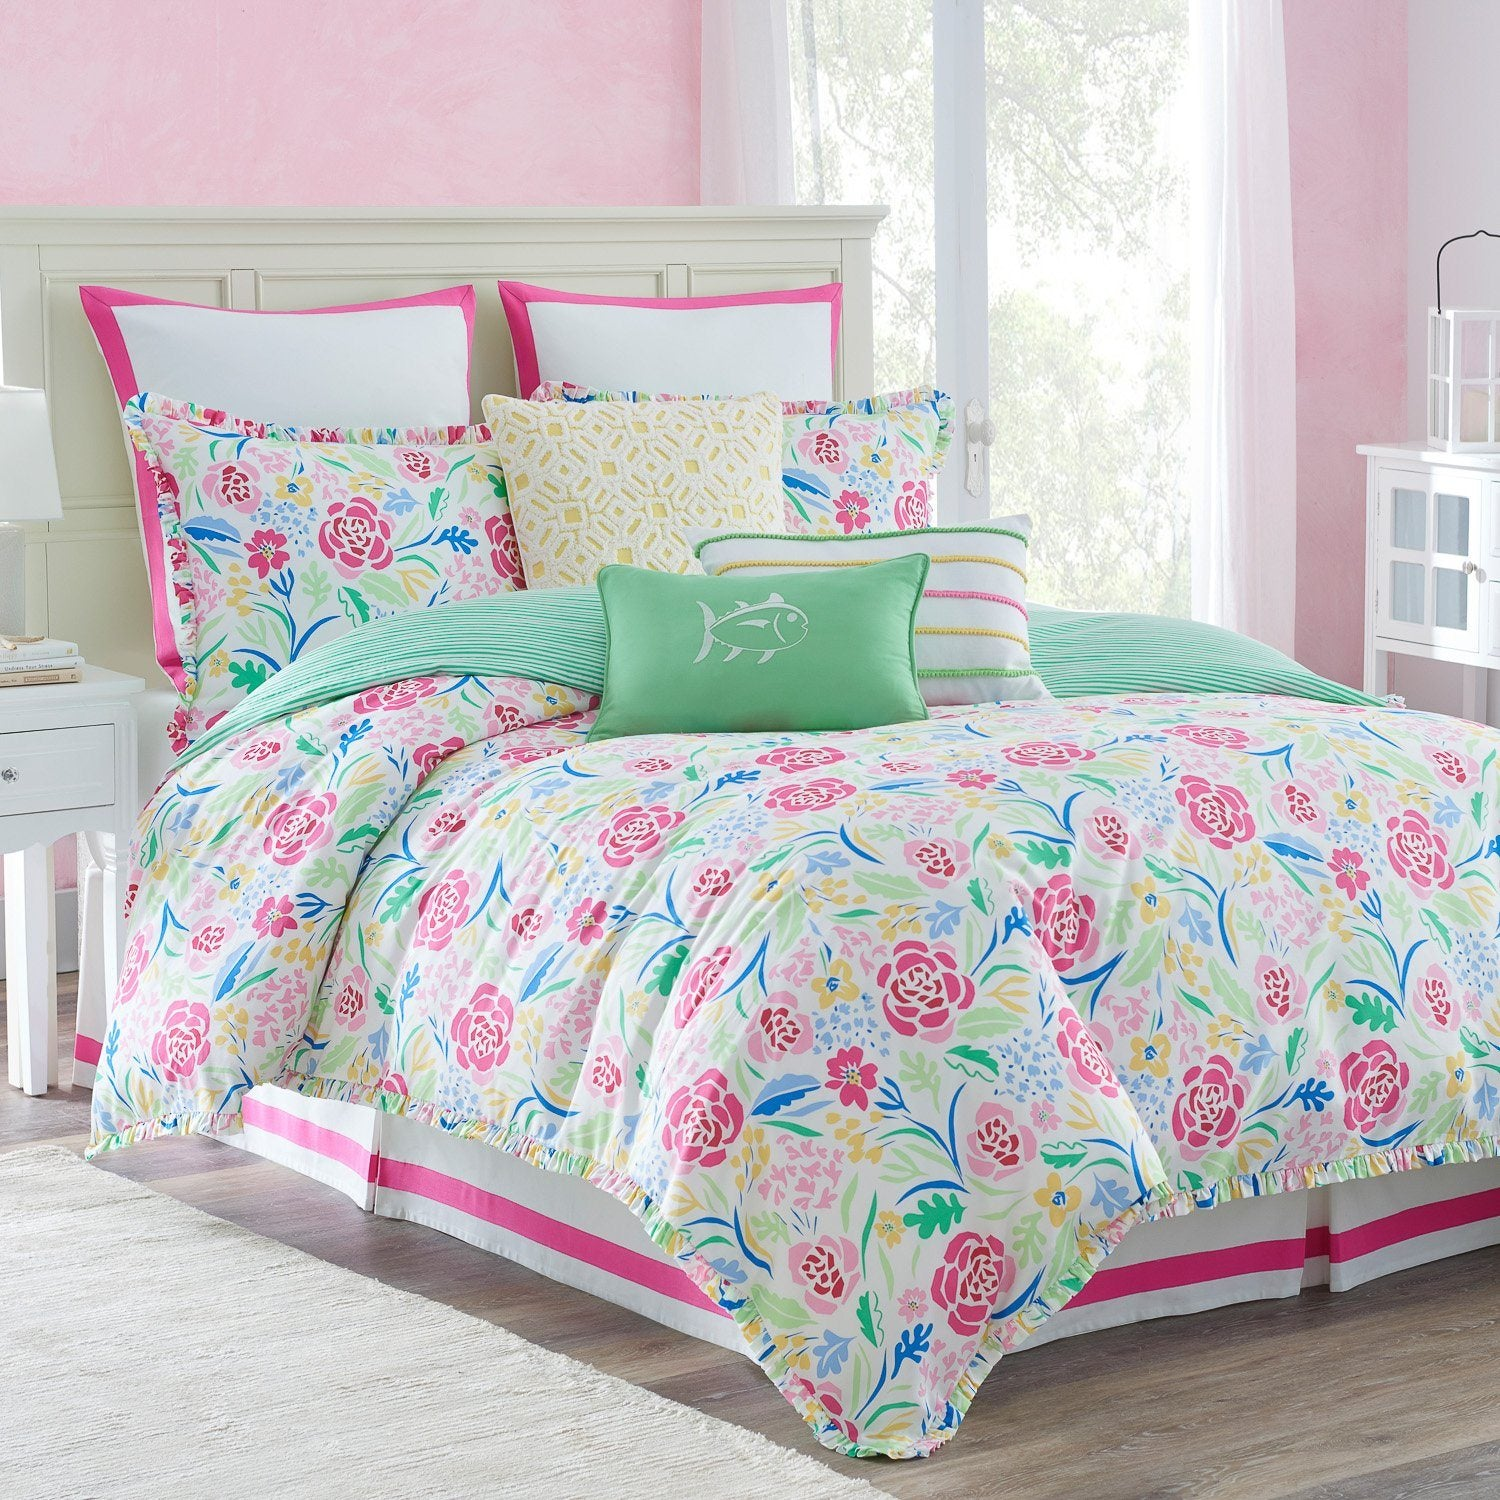 of ann smokey category home comforters by floral gish art com comforter bedding beddingsuperstore